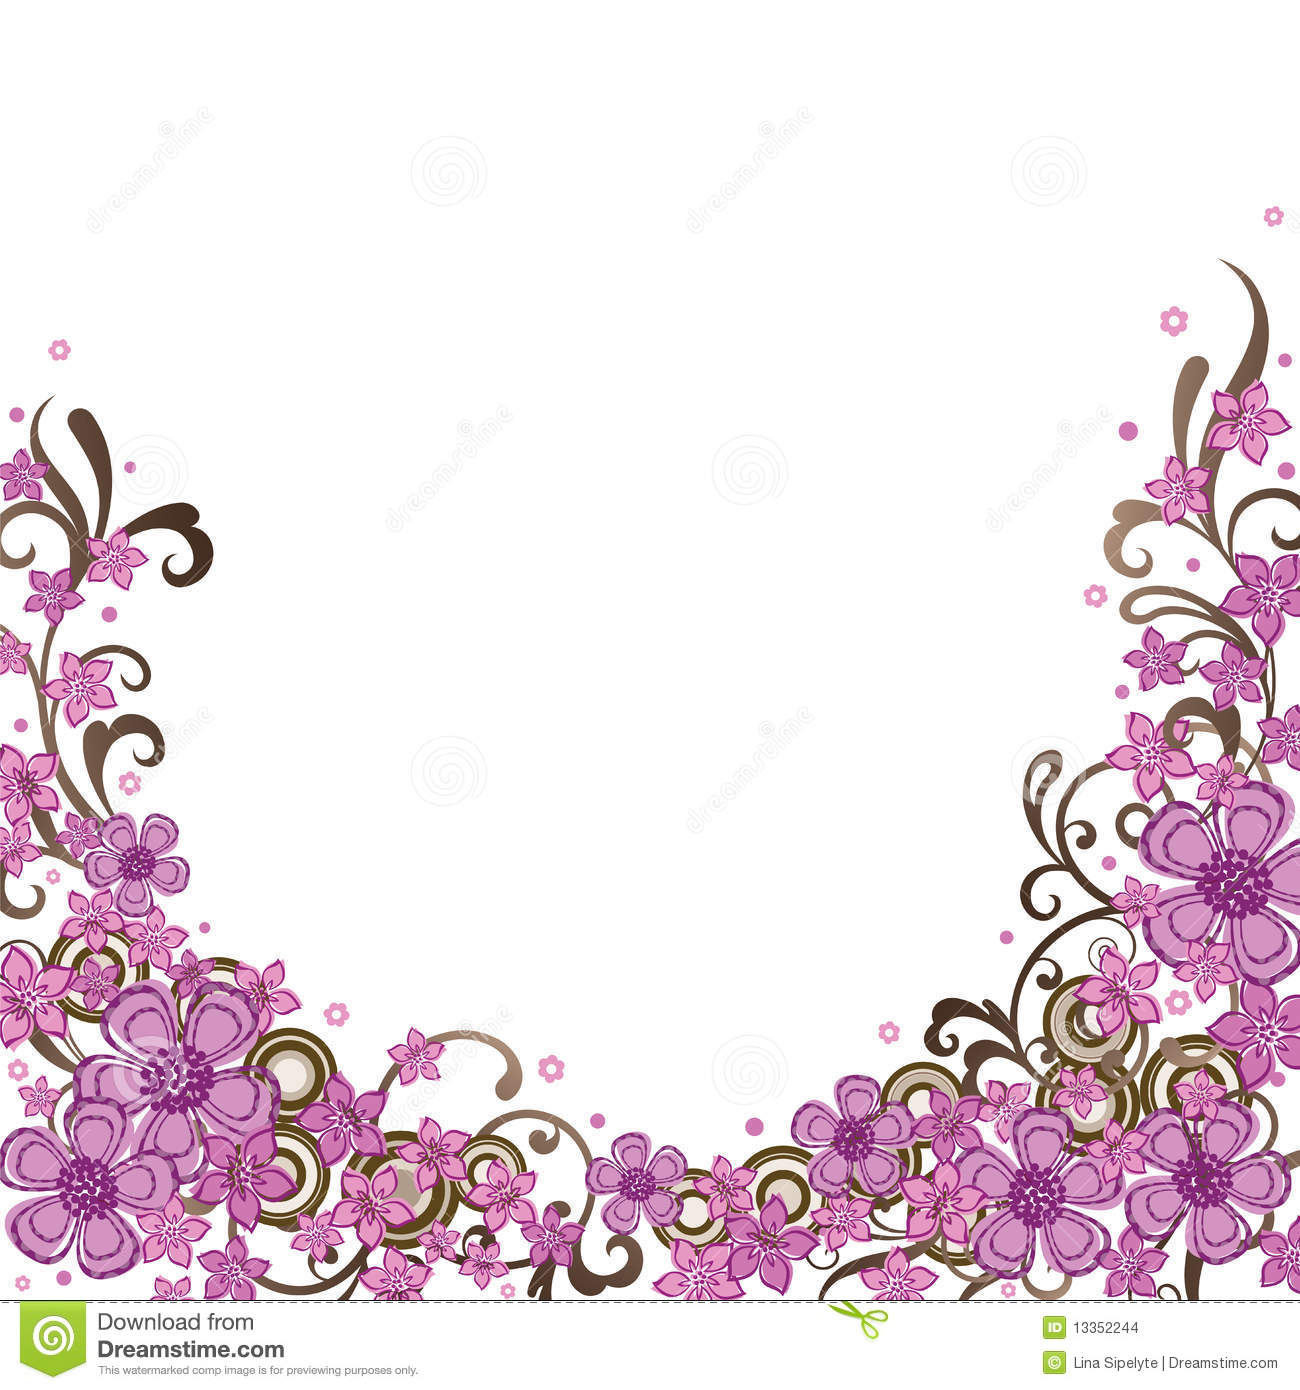 Floral borders images clipart royalty free stock Floral border images - ClipartFest clipart royalty free stock